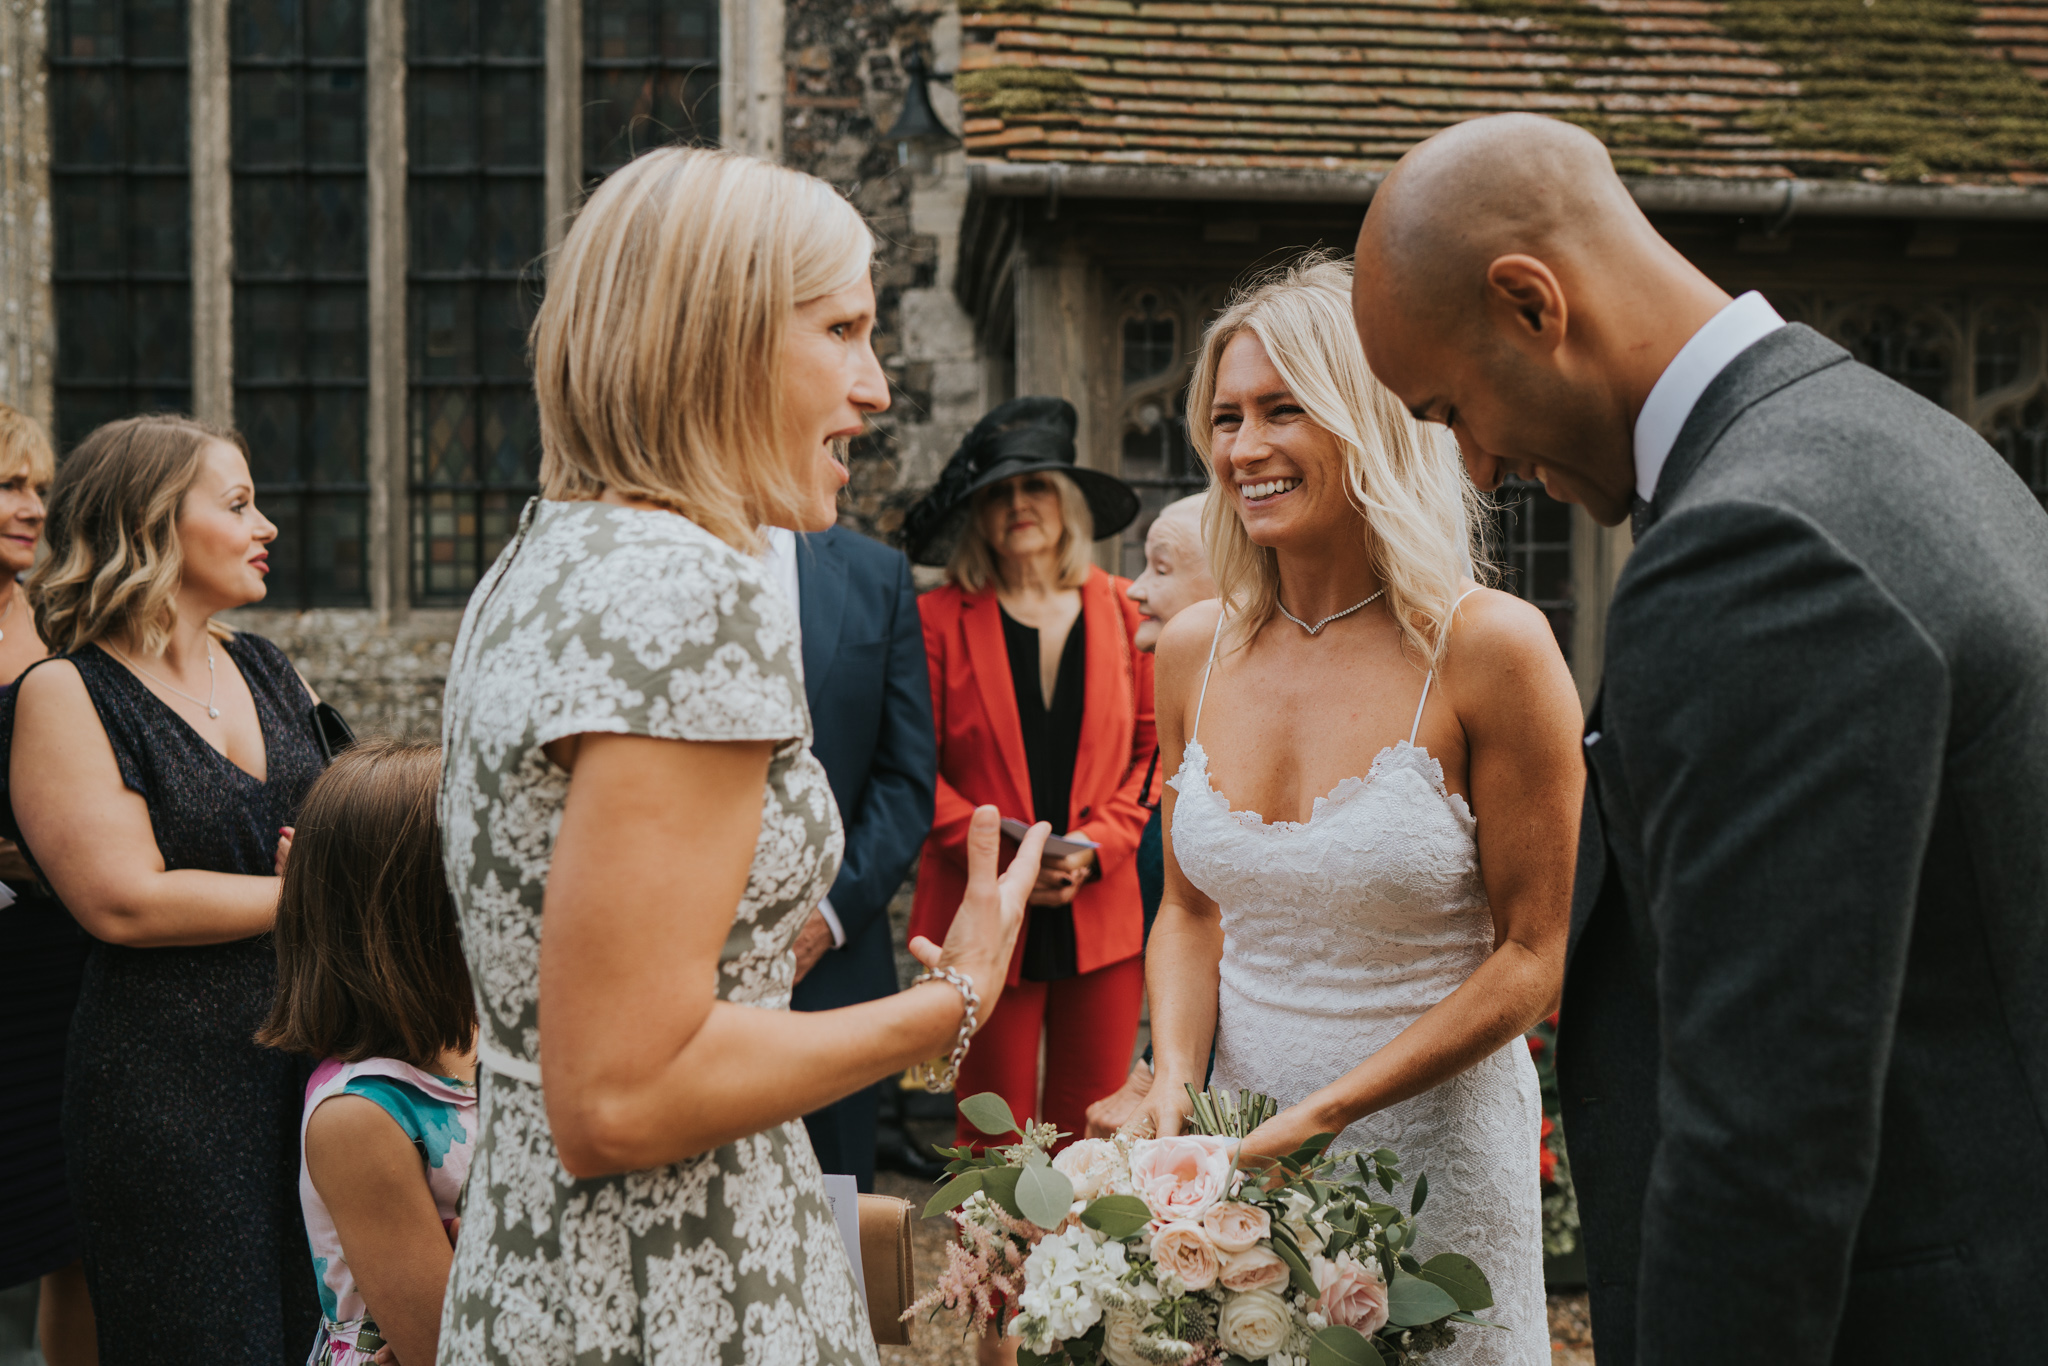 intimate-english-church-wedding-sarah-alex-colchester-essex-grace-elizabeth-colchester-essex-alternative-wedding-lifestyle-photographer-essex-suffolk-norfolk-devon (67 of 92).jpg